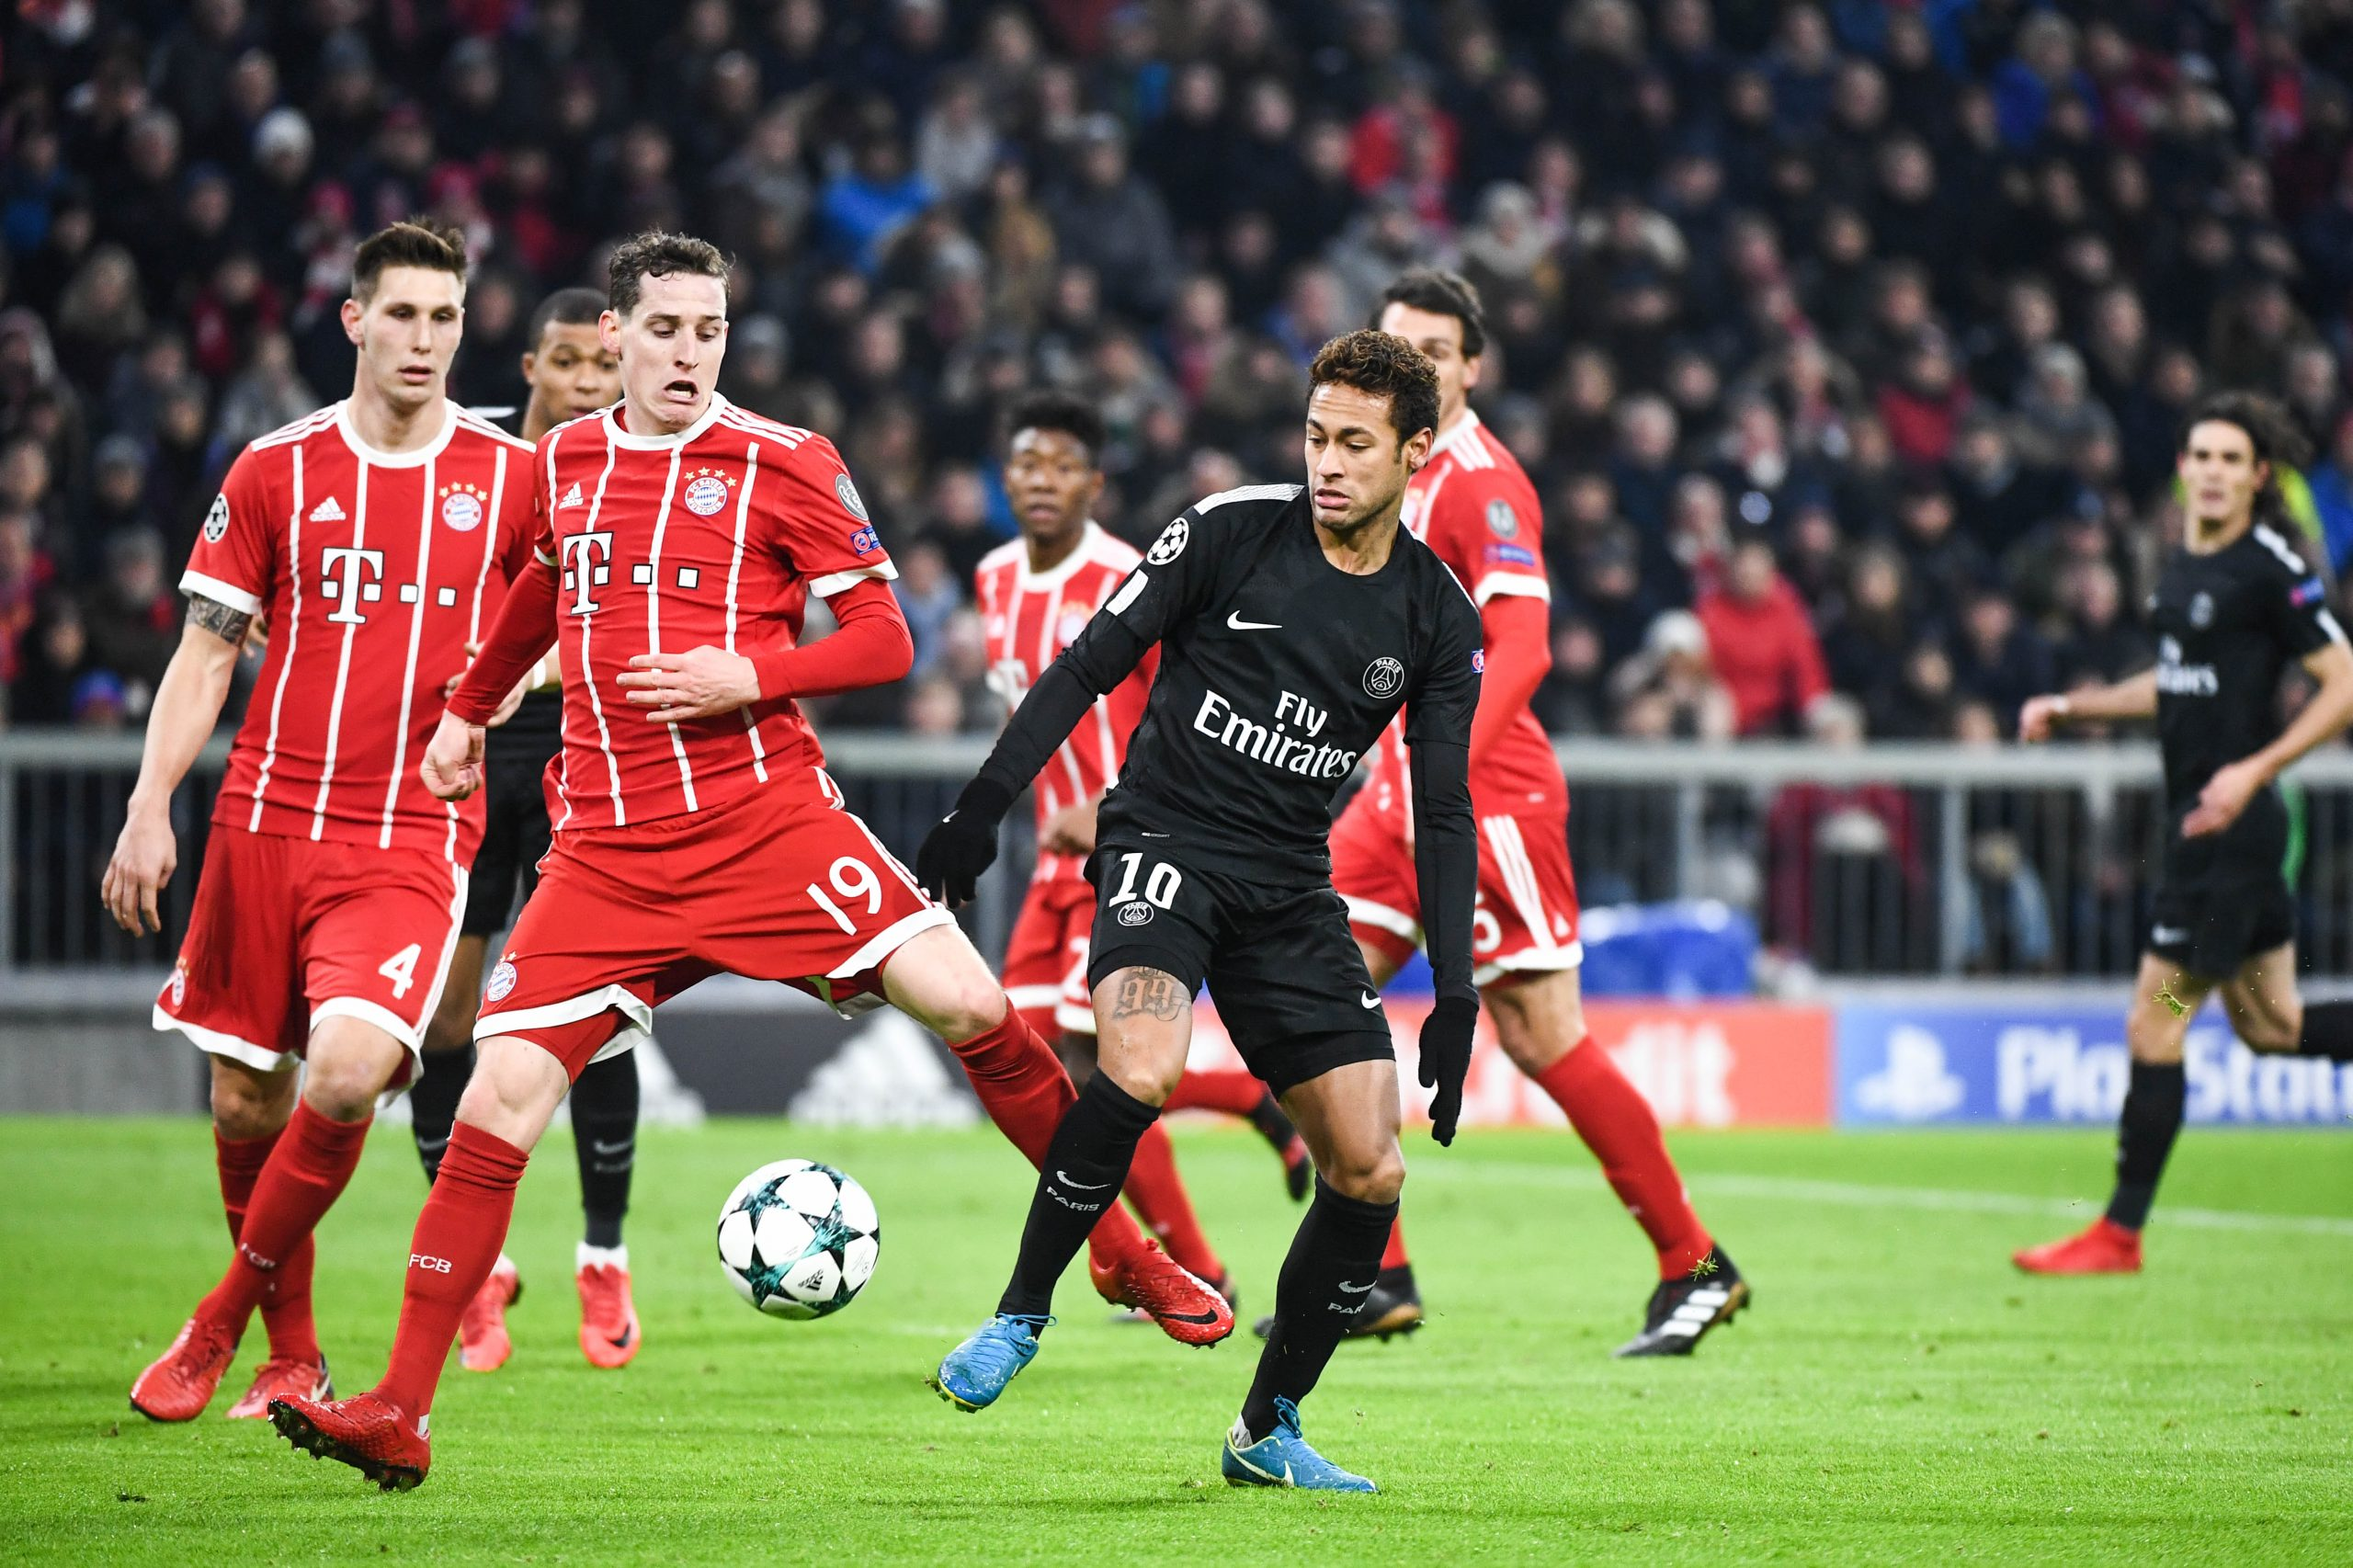 PSG vs Bayern Munich Prediction, Betting Tips, Odds & Preview